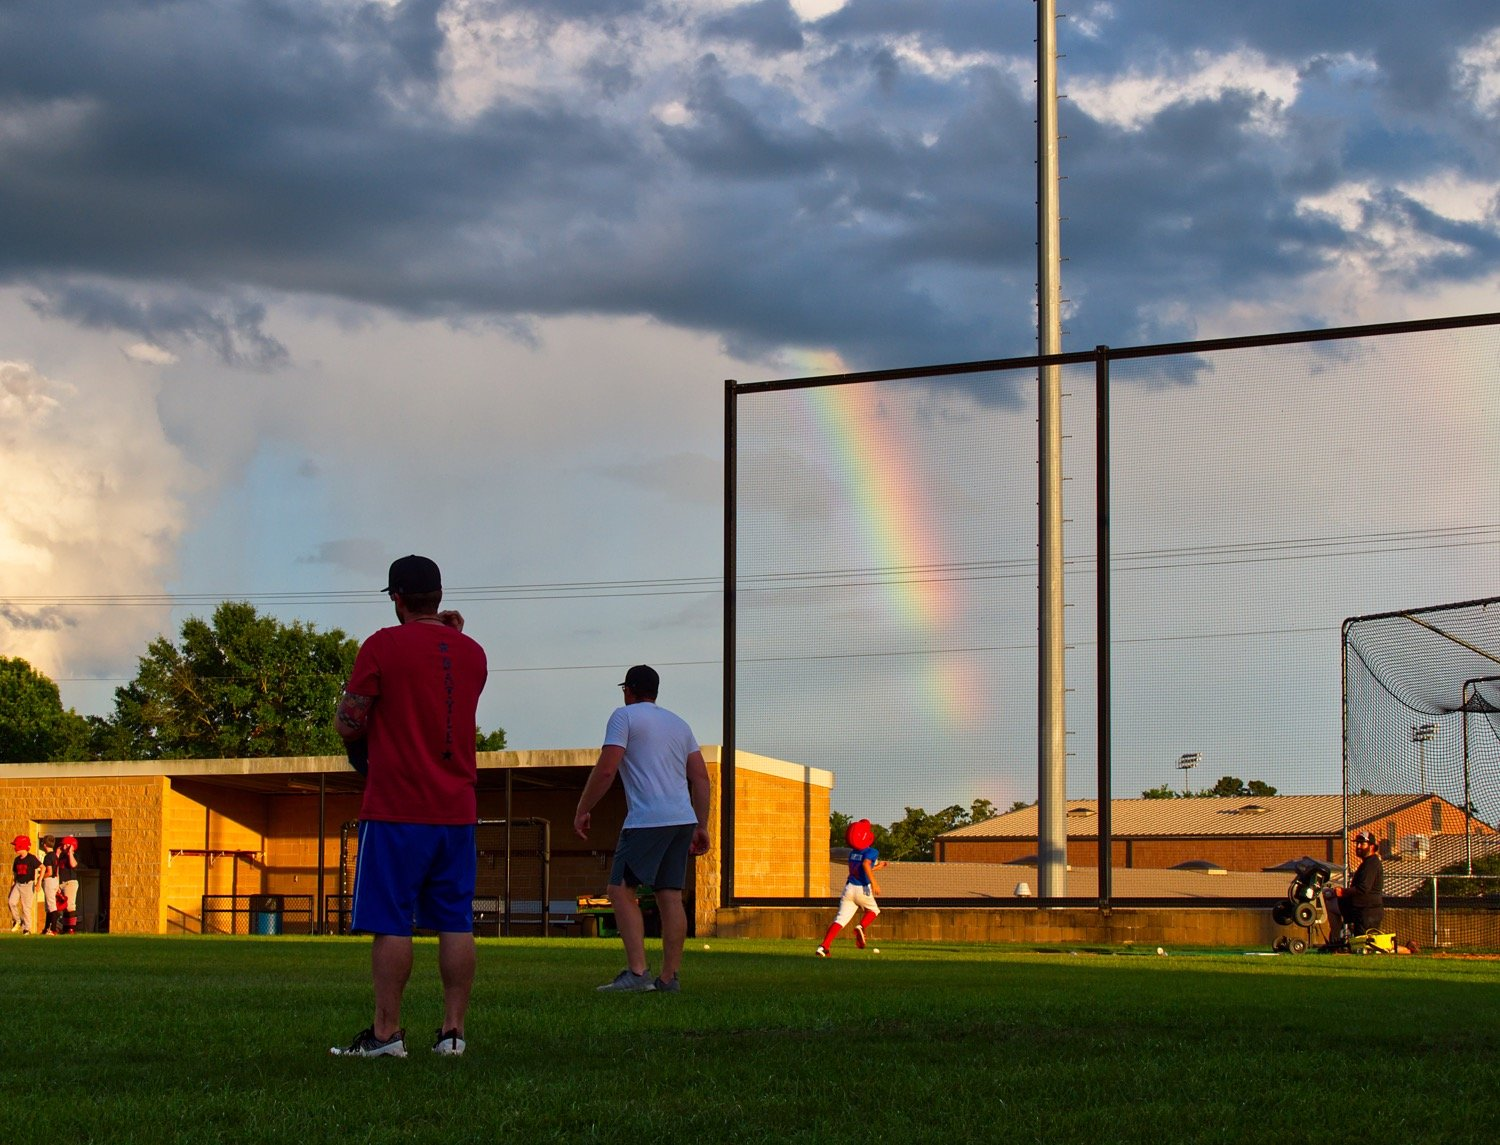 In what could be a sign of better times, Mineola youth begin workouts in preparation for baseball tournaments. Though local youth foundations have canceled the summer season, several traveling and tournament teams are gearing up for activity after youth sports restrictions were lifted June 1.